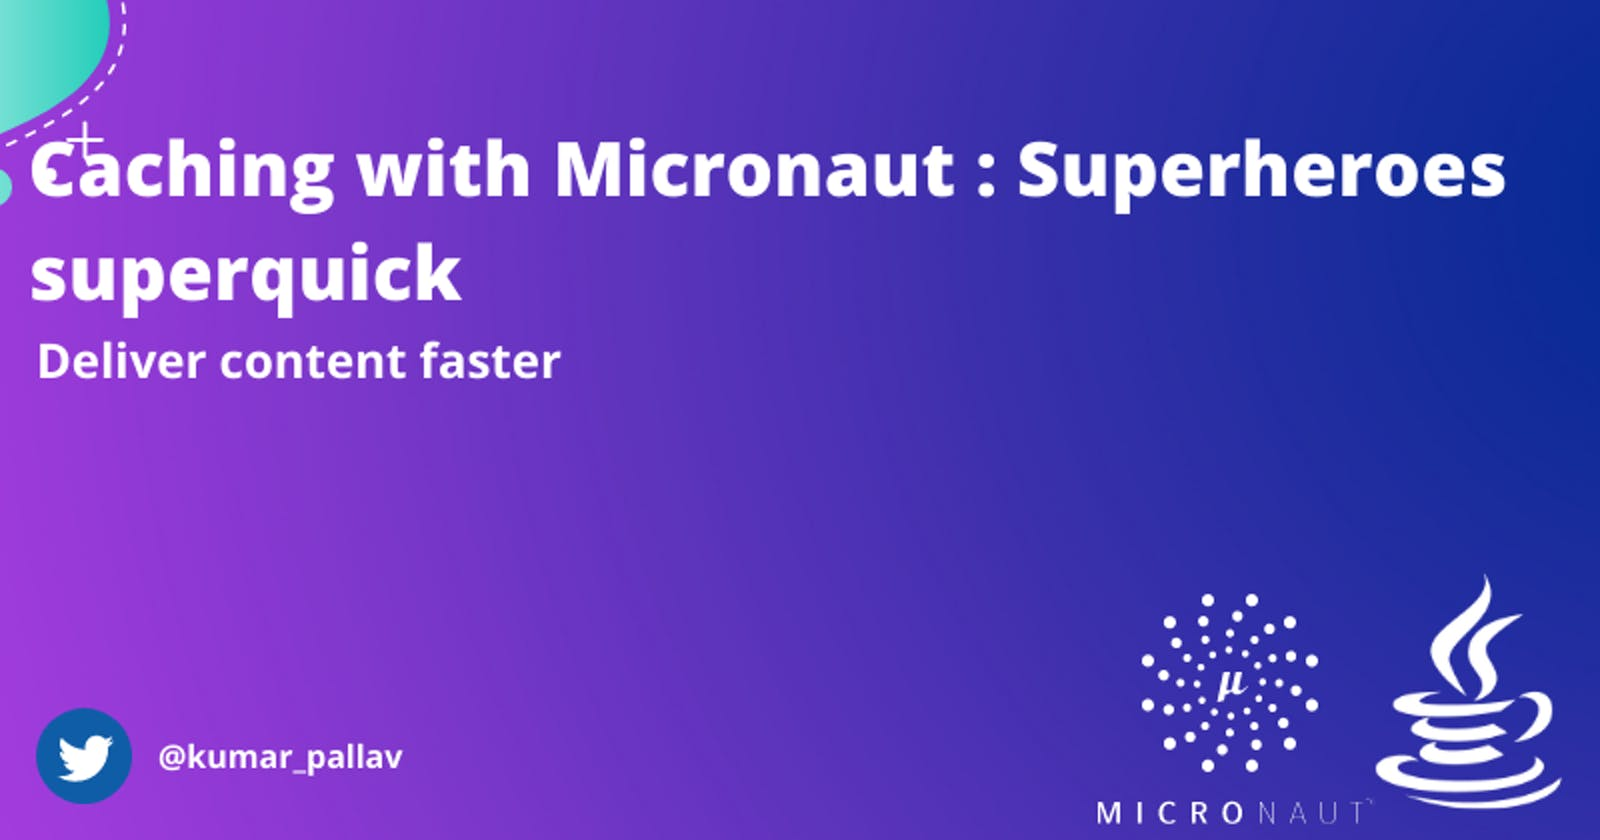 Caching with Micronaut: Superheroes superquick